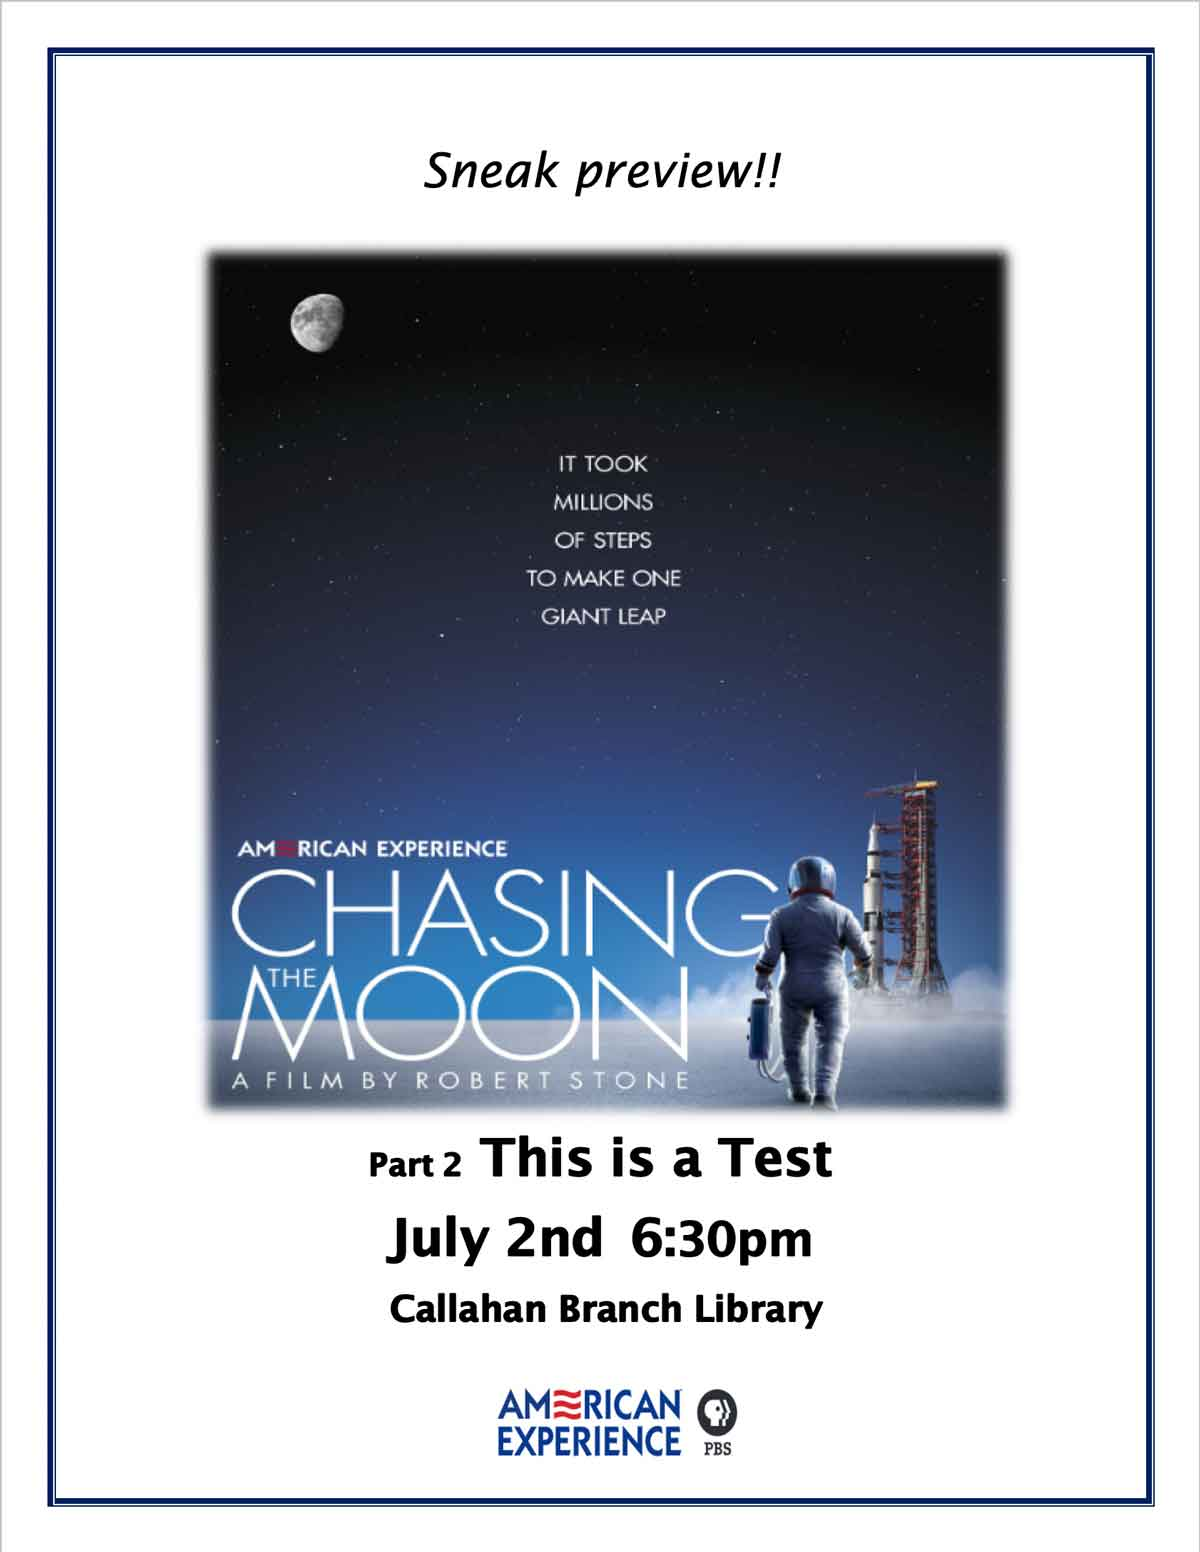 This is a Test on July 2nd at 6:30pm Callahan Branch Library